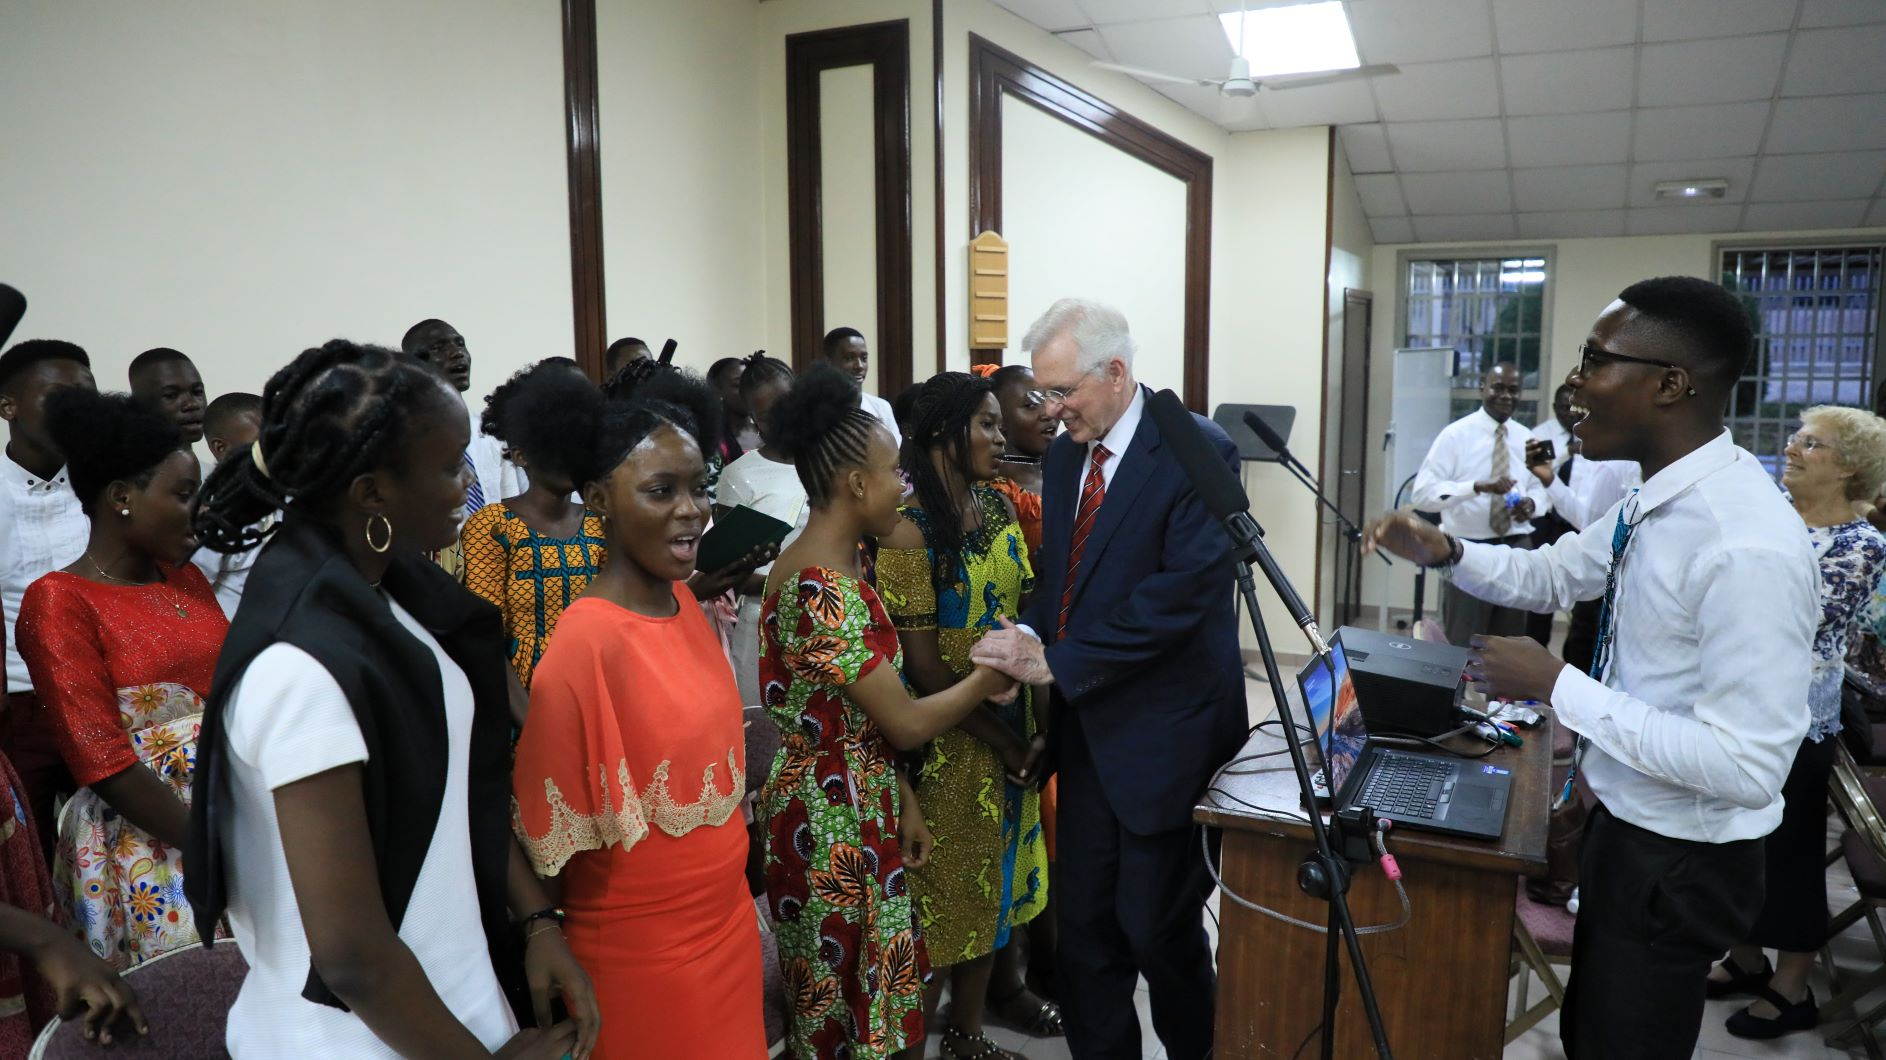 Elder D. Todd Christofferson shakes the hands of Latter-day Saints gathered for a member devotional in Cote d'Ivoire.